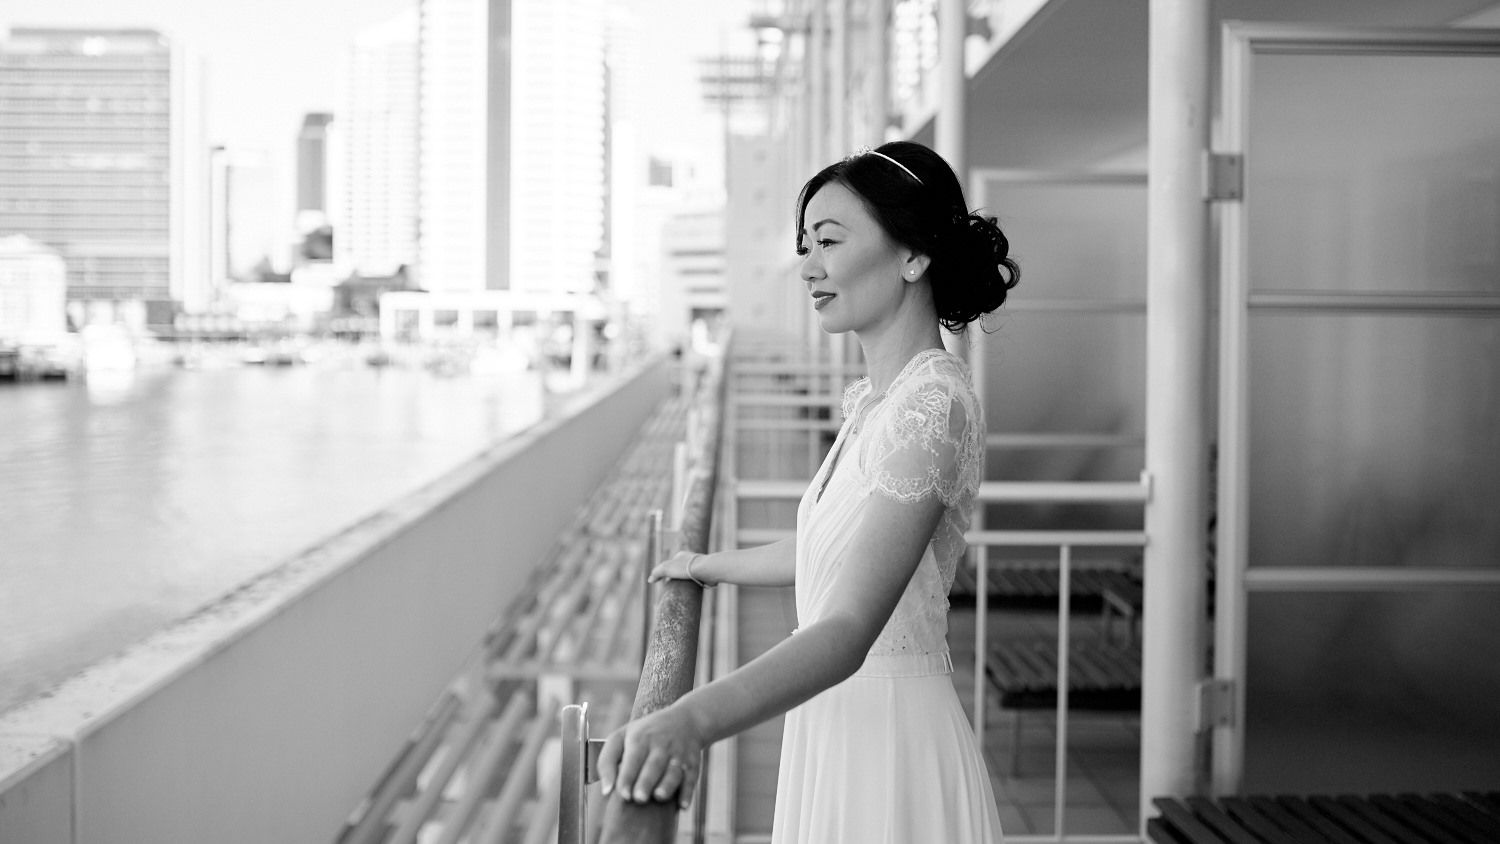 Bride outside on balcony